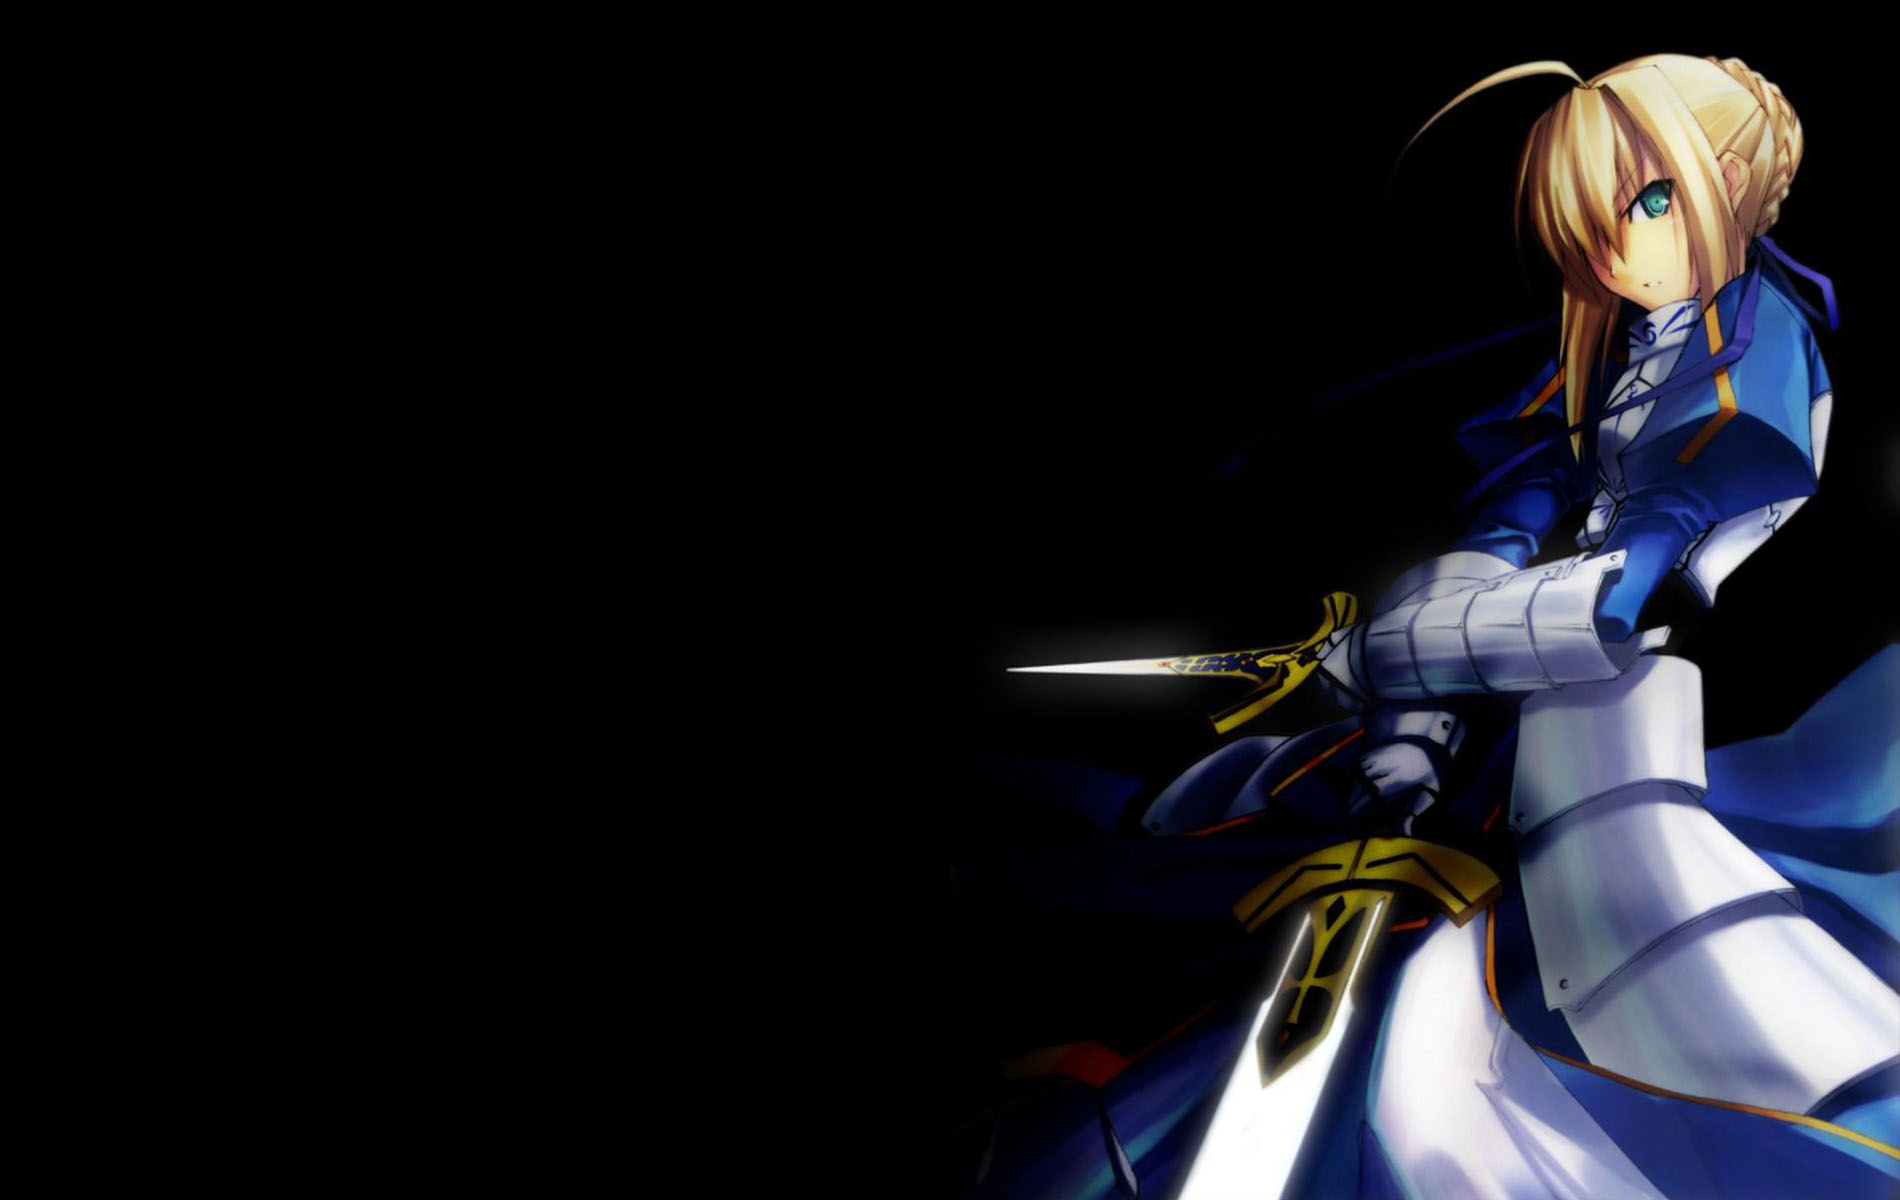 Anime - Fate/Stay Night  - Saber Wallpaper